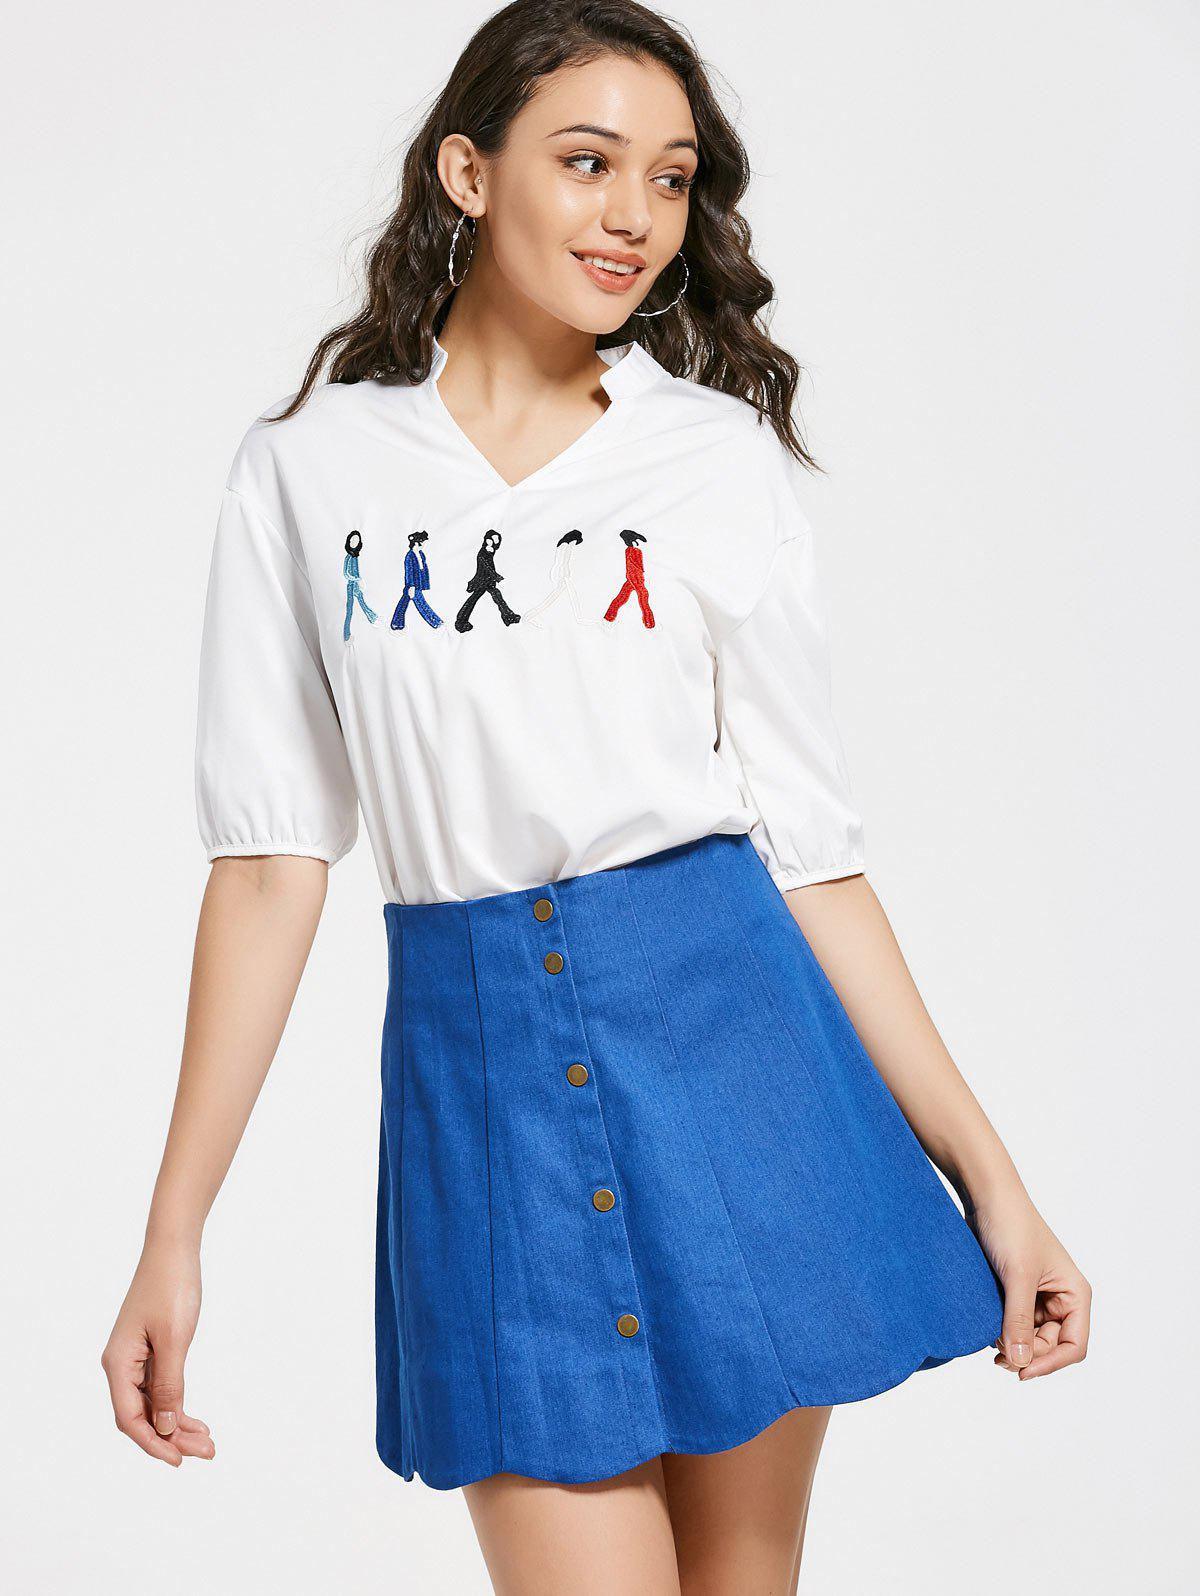 V Neck Figure Embroidered Patch Blouse 222193502